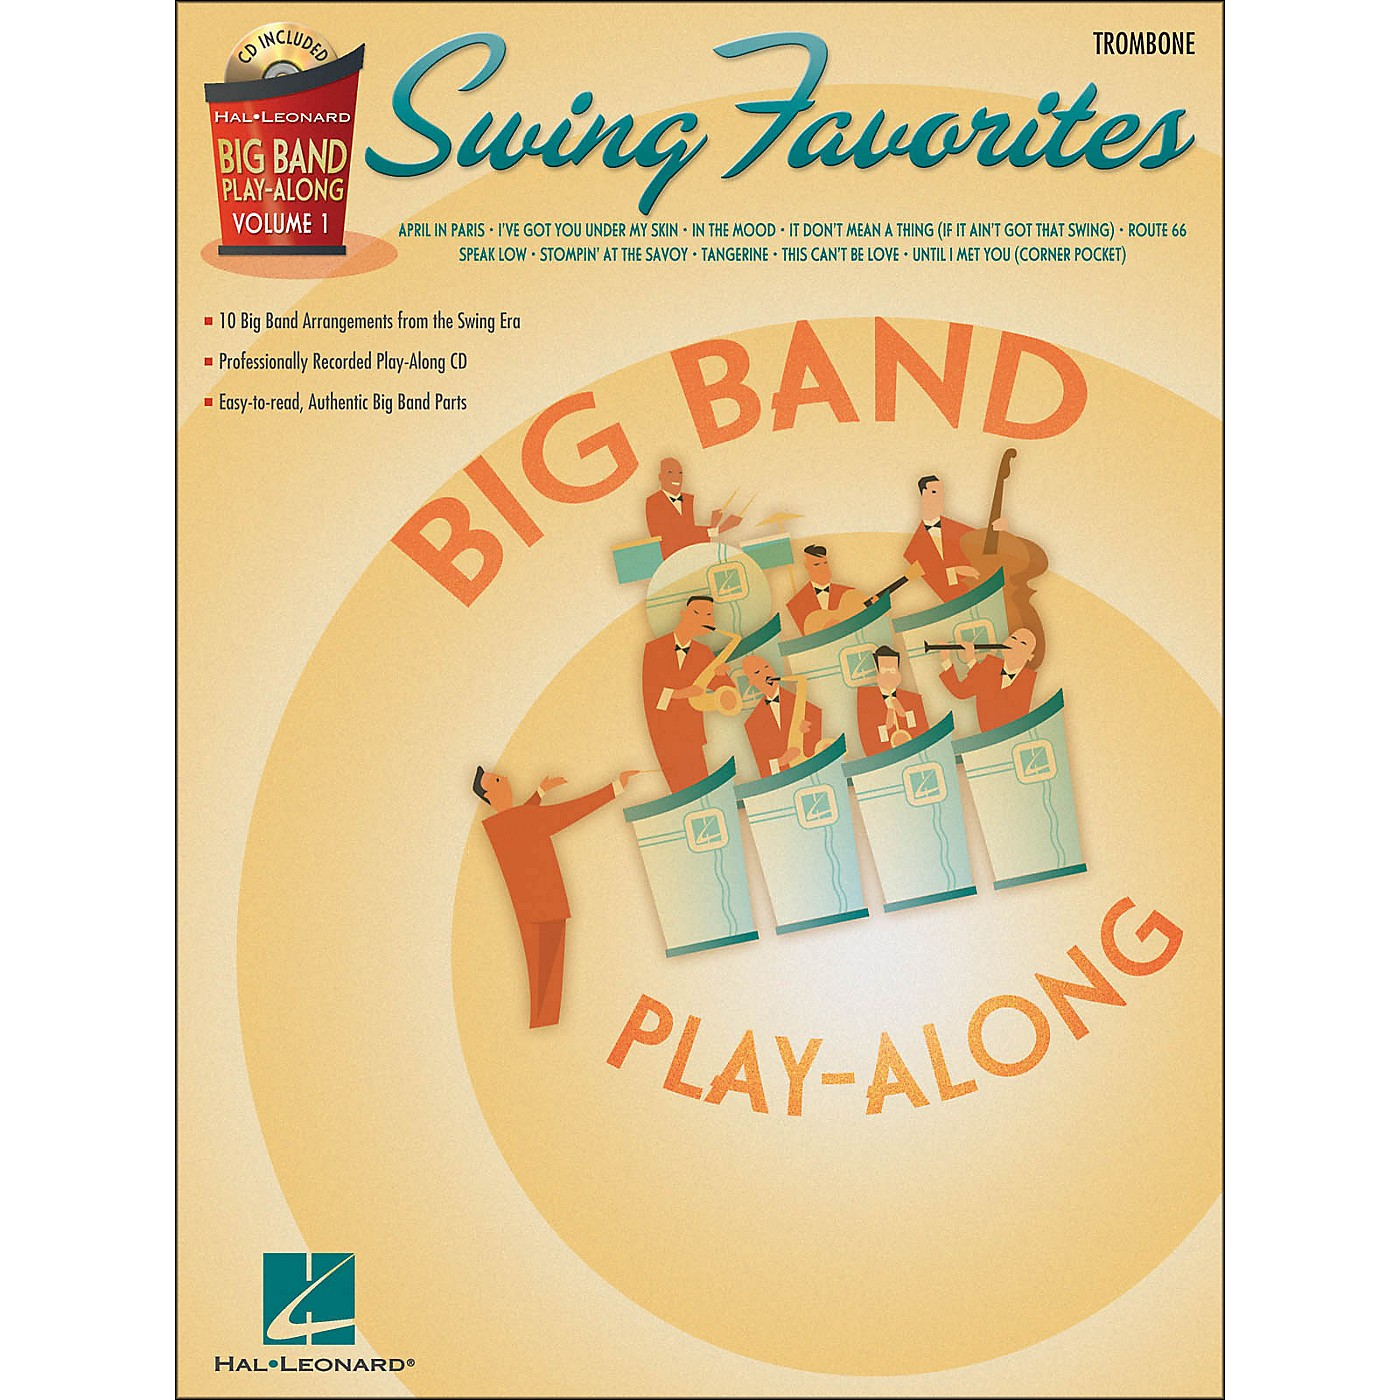 Hal Leonard Swing Favorites Big Band Play-Along Vol. 1 Trombone Book/CD thumbnail